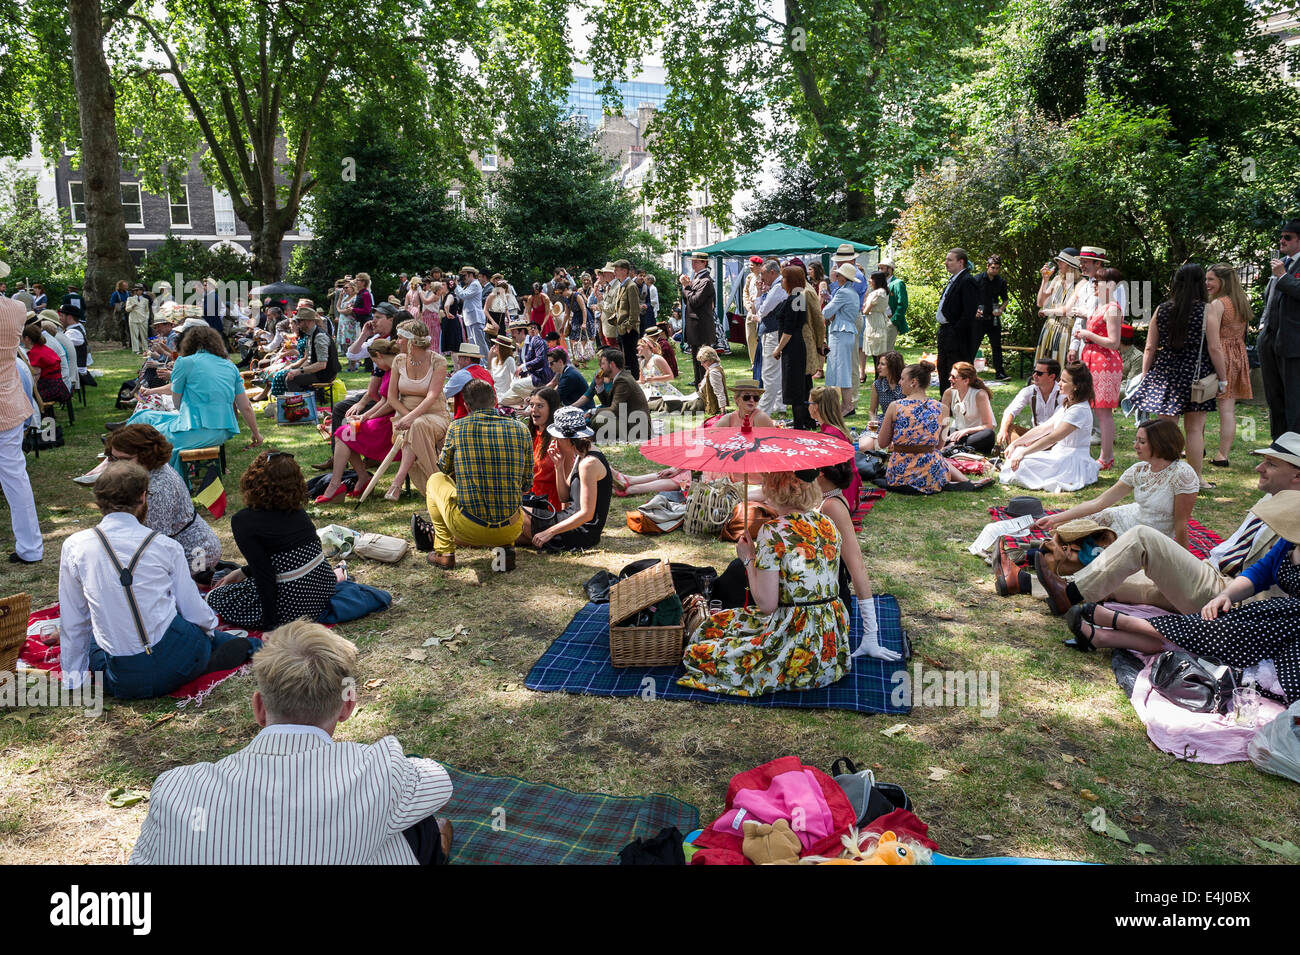 Bedford Square, Bloomsbury, London, 19th April 2014.  People enjoying the 10th anniversary celebrations of the Chap - Stock Image